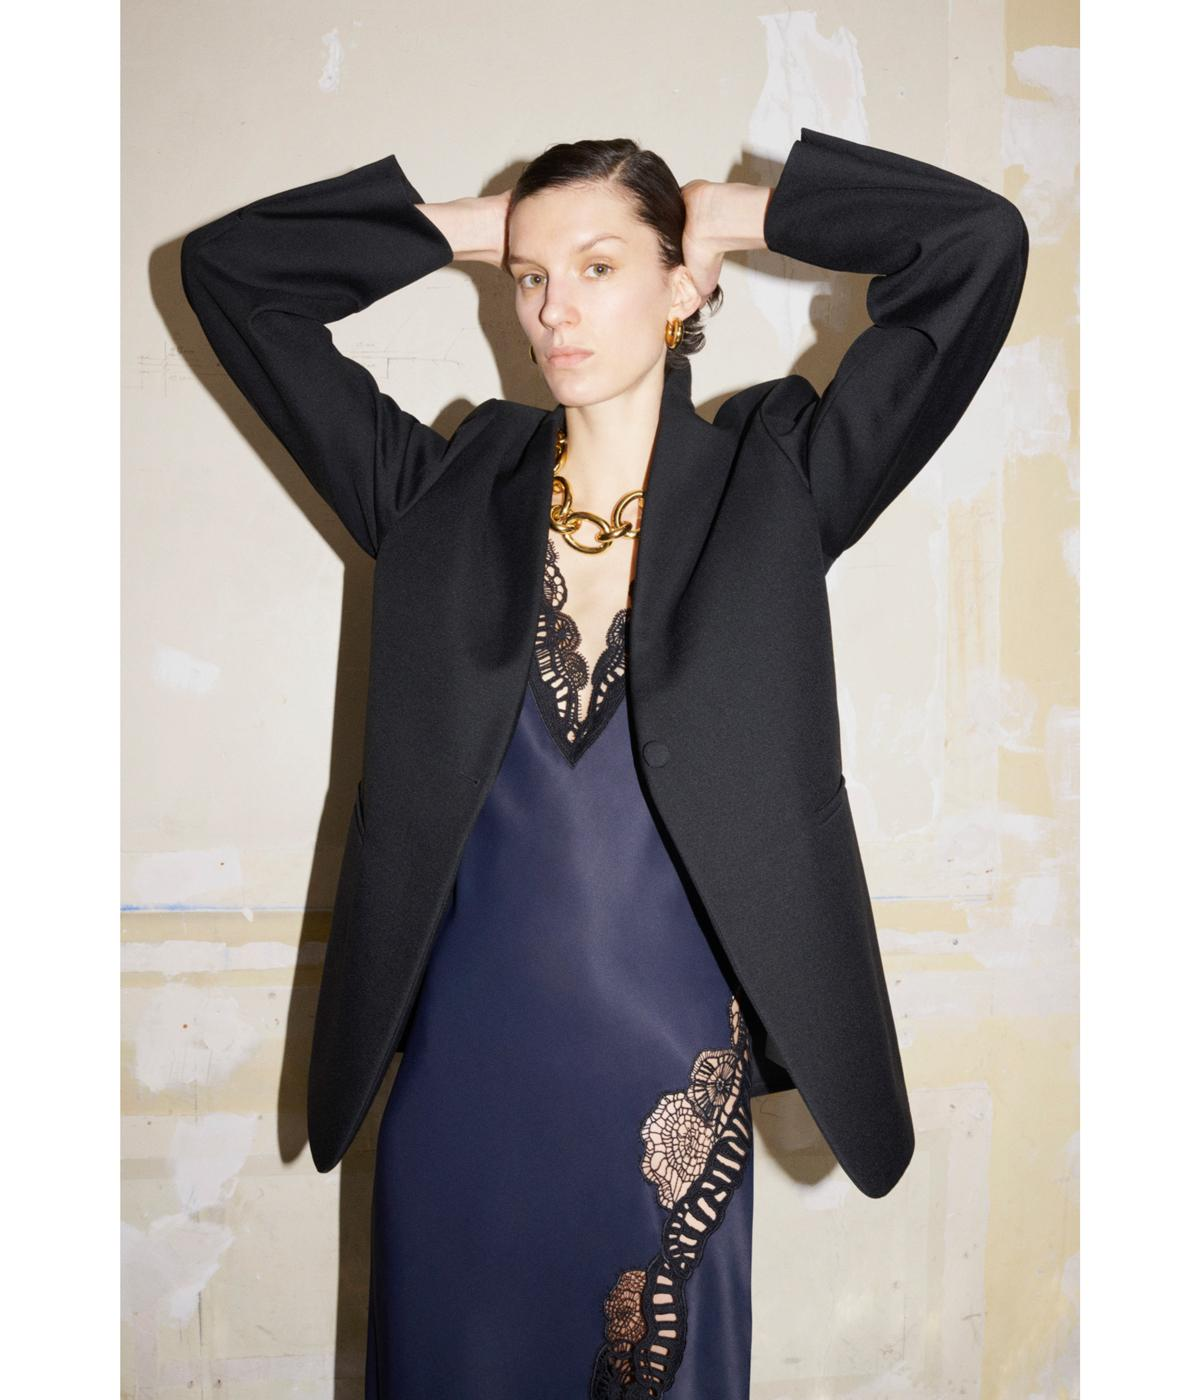 Woman wearing slip dress and suit jacket